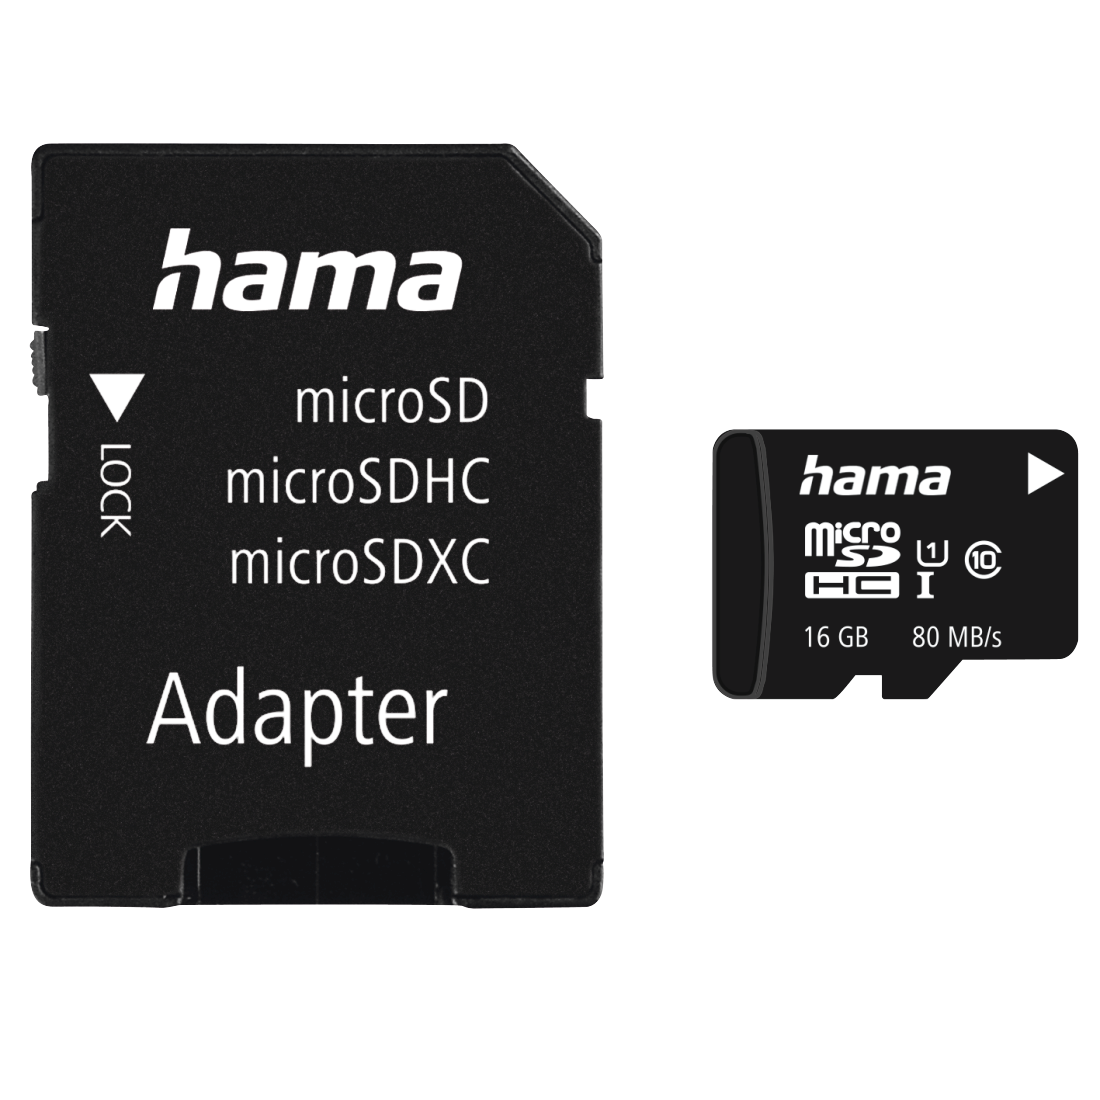 abx High-Res Image - Hama, microSDHC 16GB Class 10 UHS-I 80MB/s + Adapter/Photo